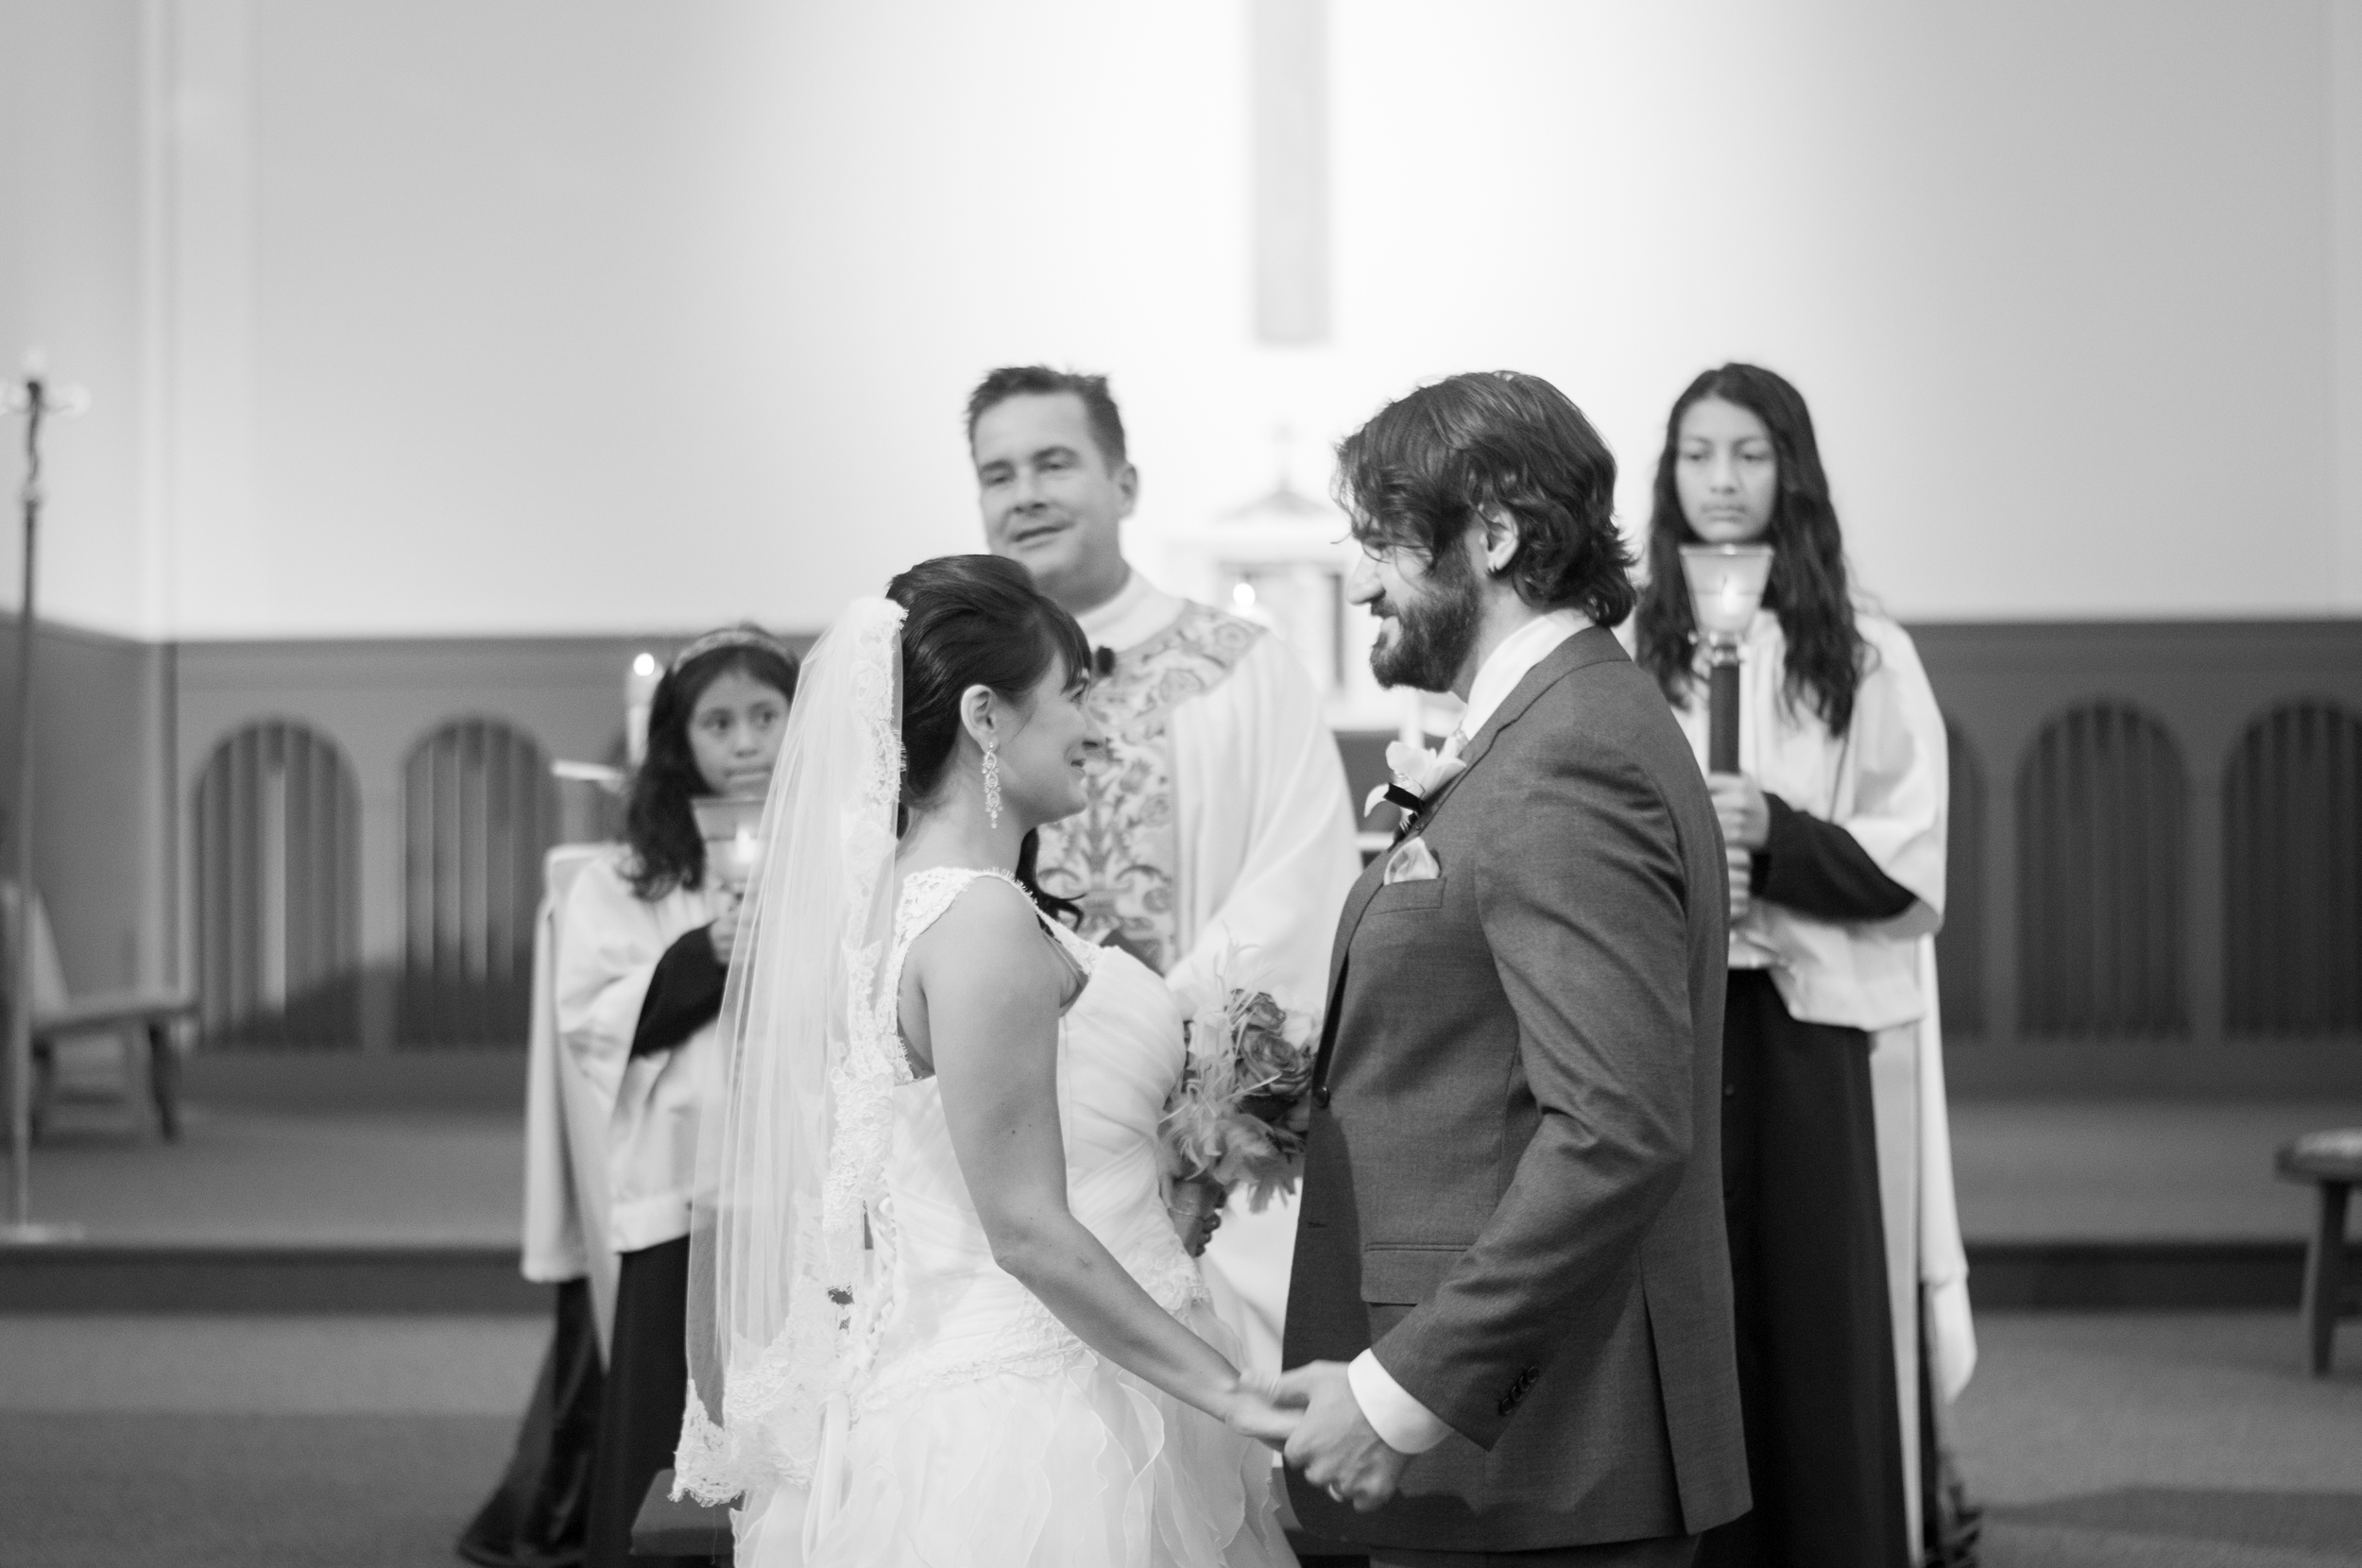 meredithdonnellyphotography-Williams Wedding 2014-317.jpg